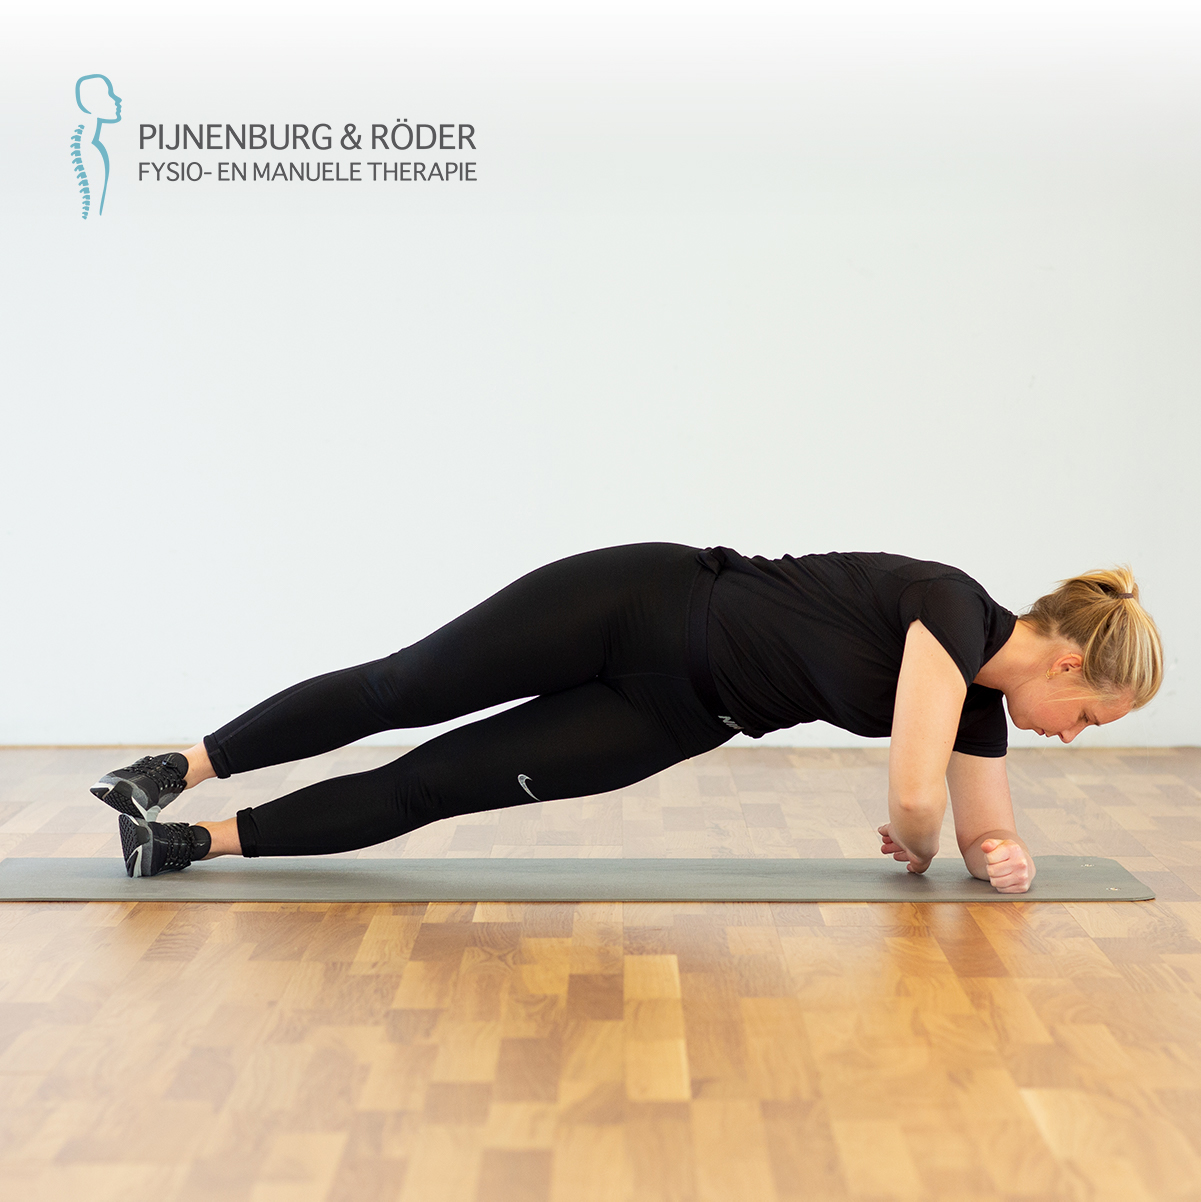 lage rug stabiliteit side plank with twist